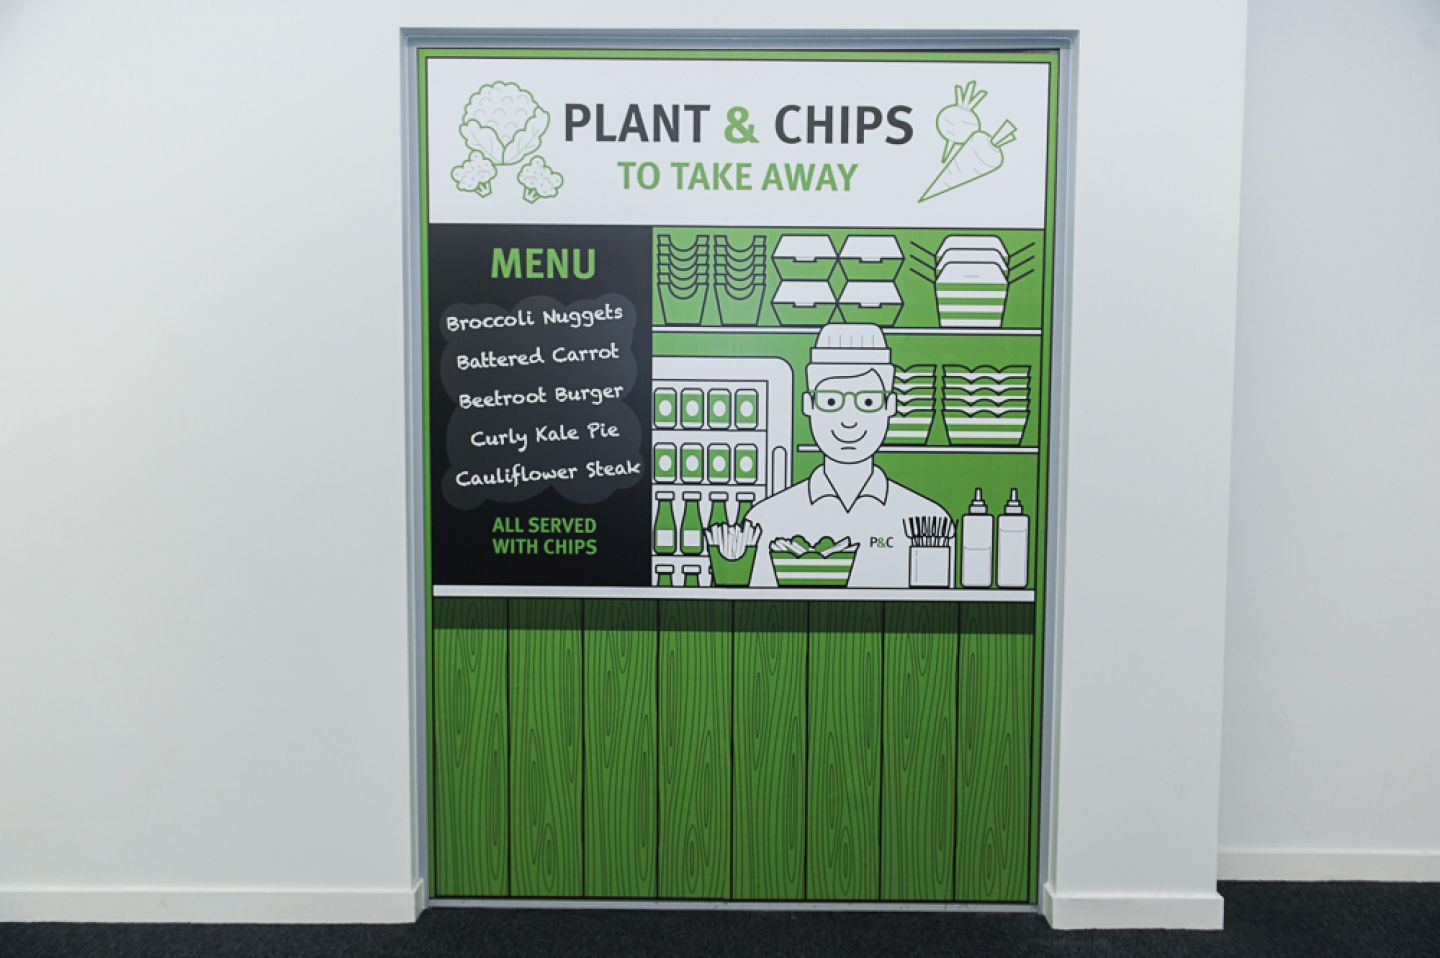 Plant and Chips to take away, menu: broccoli nuggers, battered carrot, beetroot burger, cauliflower steak.